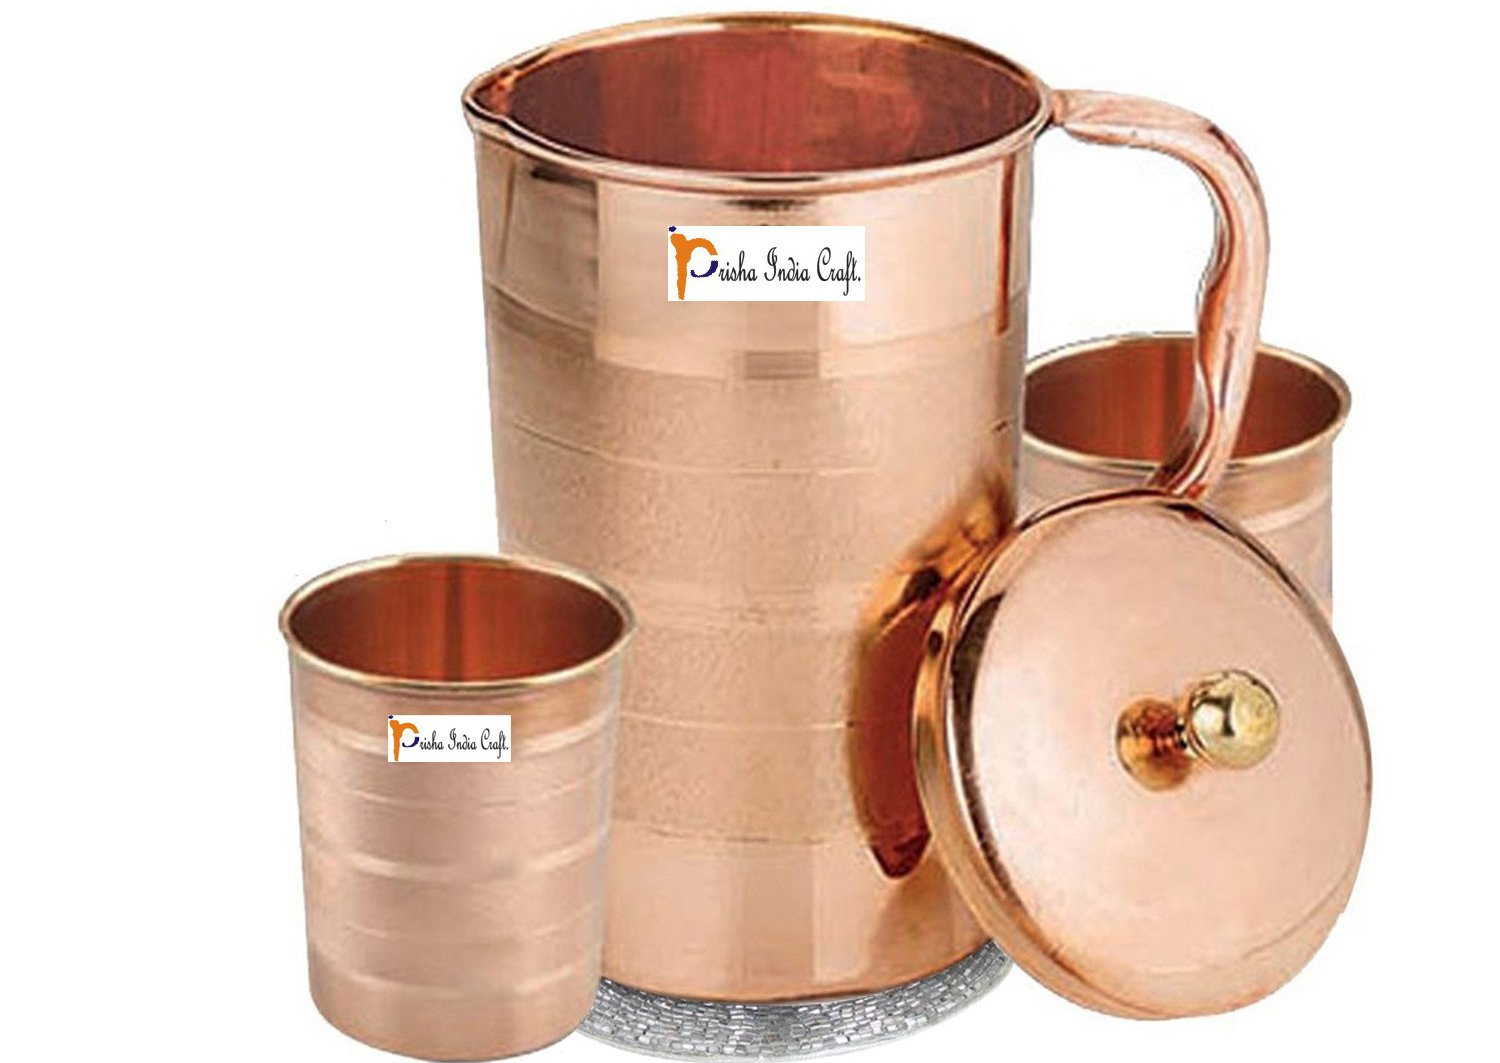 Prisha India Craft Pure Copper Pitcher with Lid and Tumbler Set of 2/Designer Water Jug with Ayurvedic Health Benefits/Decanter Set for Drinking Water/Drinkware Accessory, 1.6 Litre